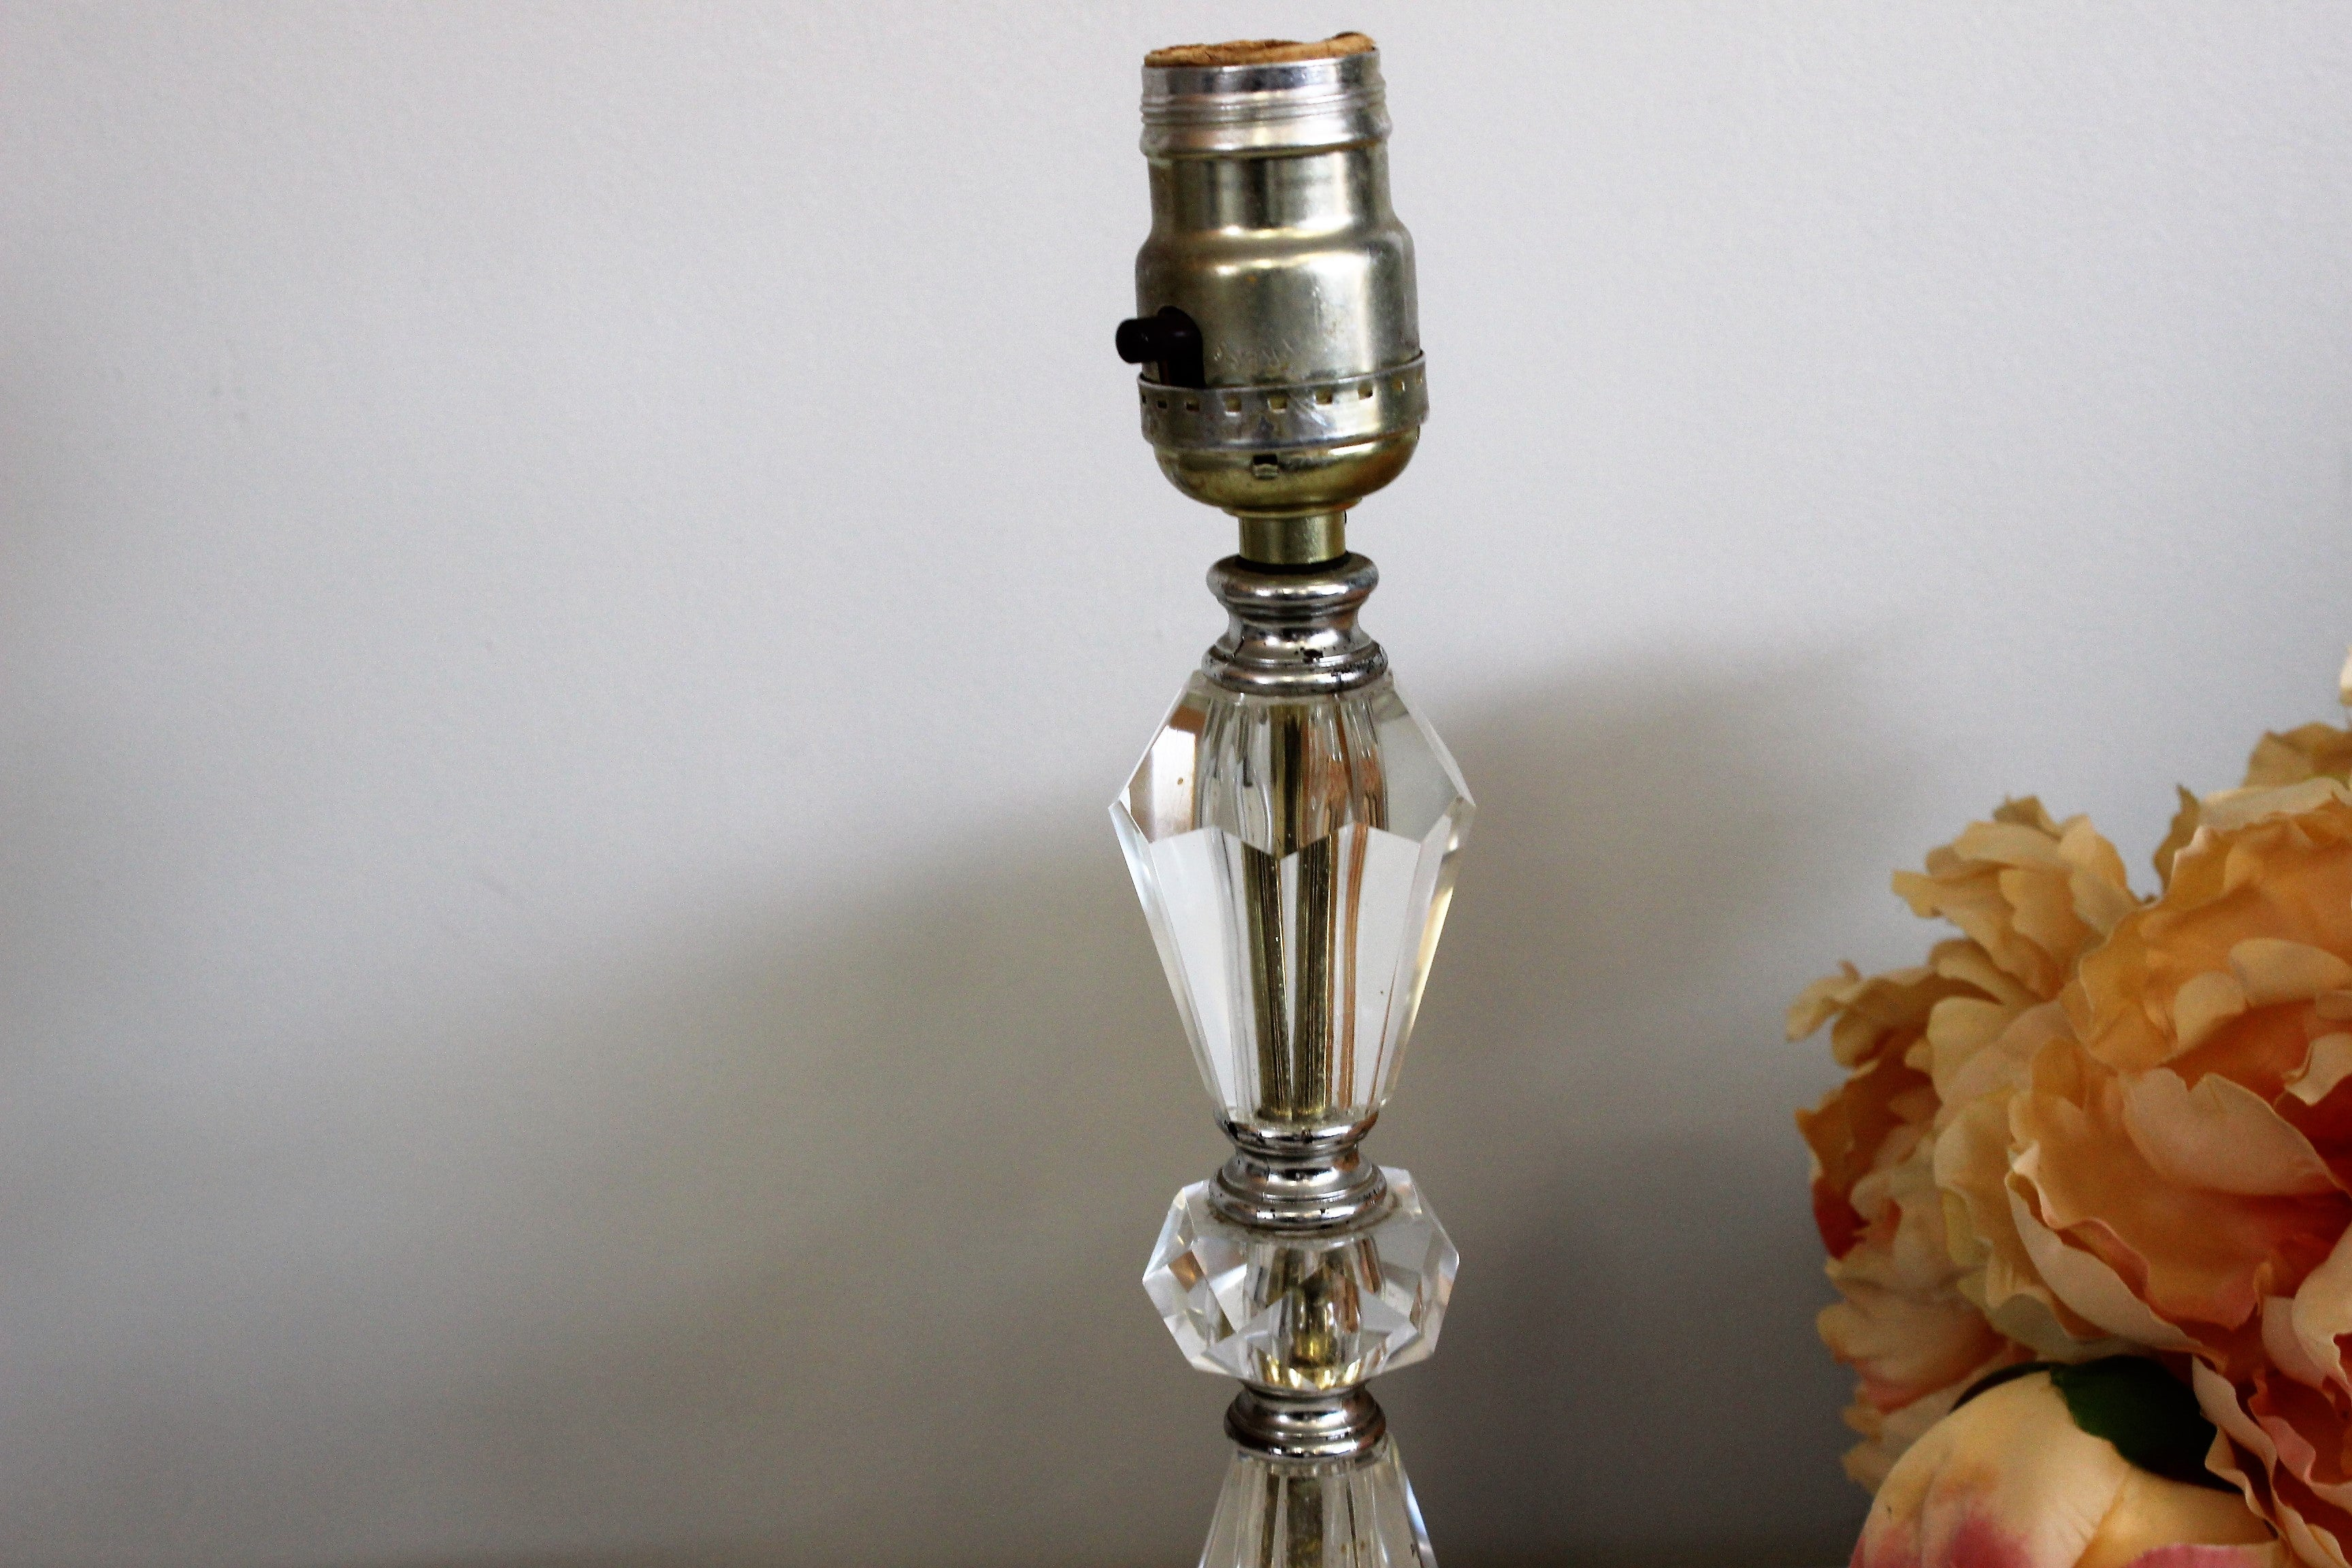 Vintage 1950s Lucite Lamp With Marble Base